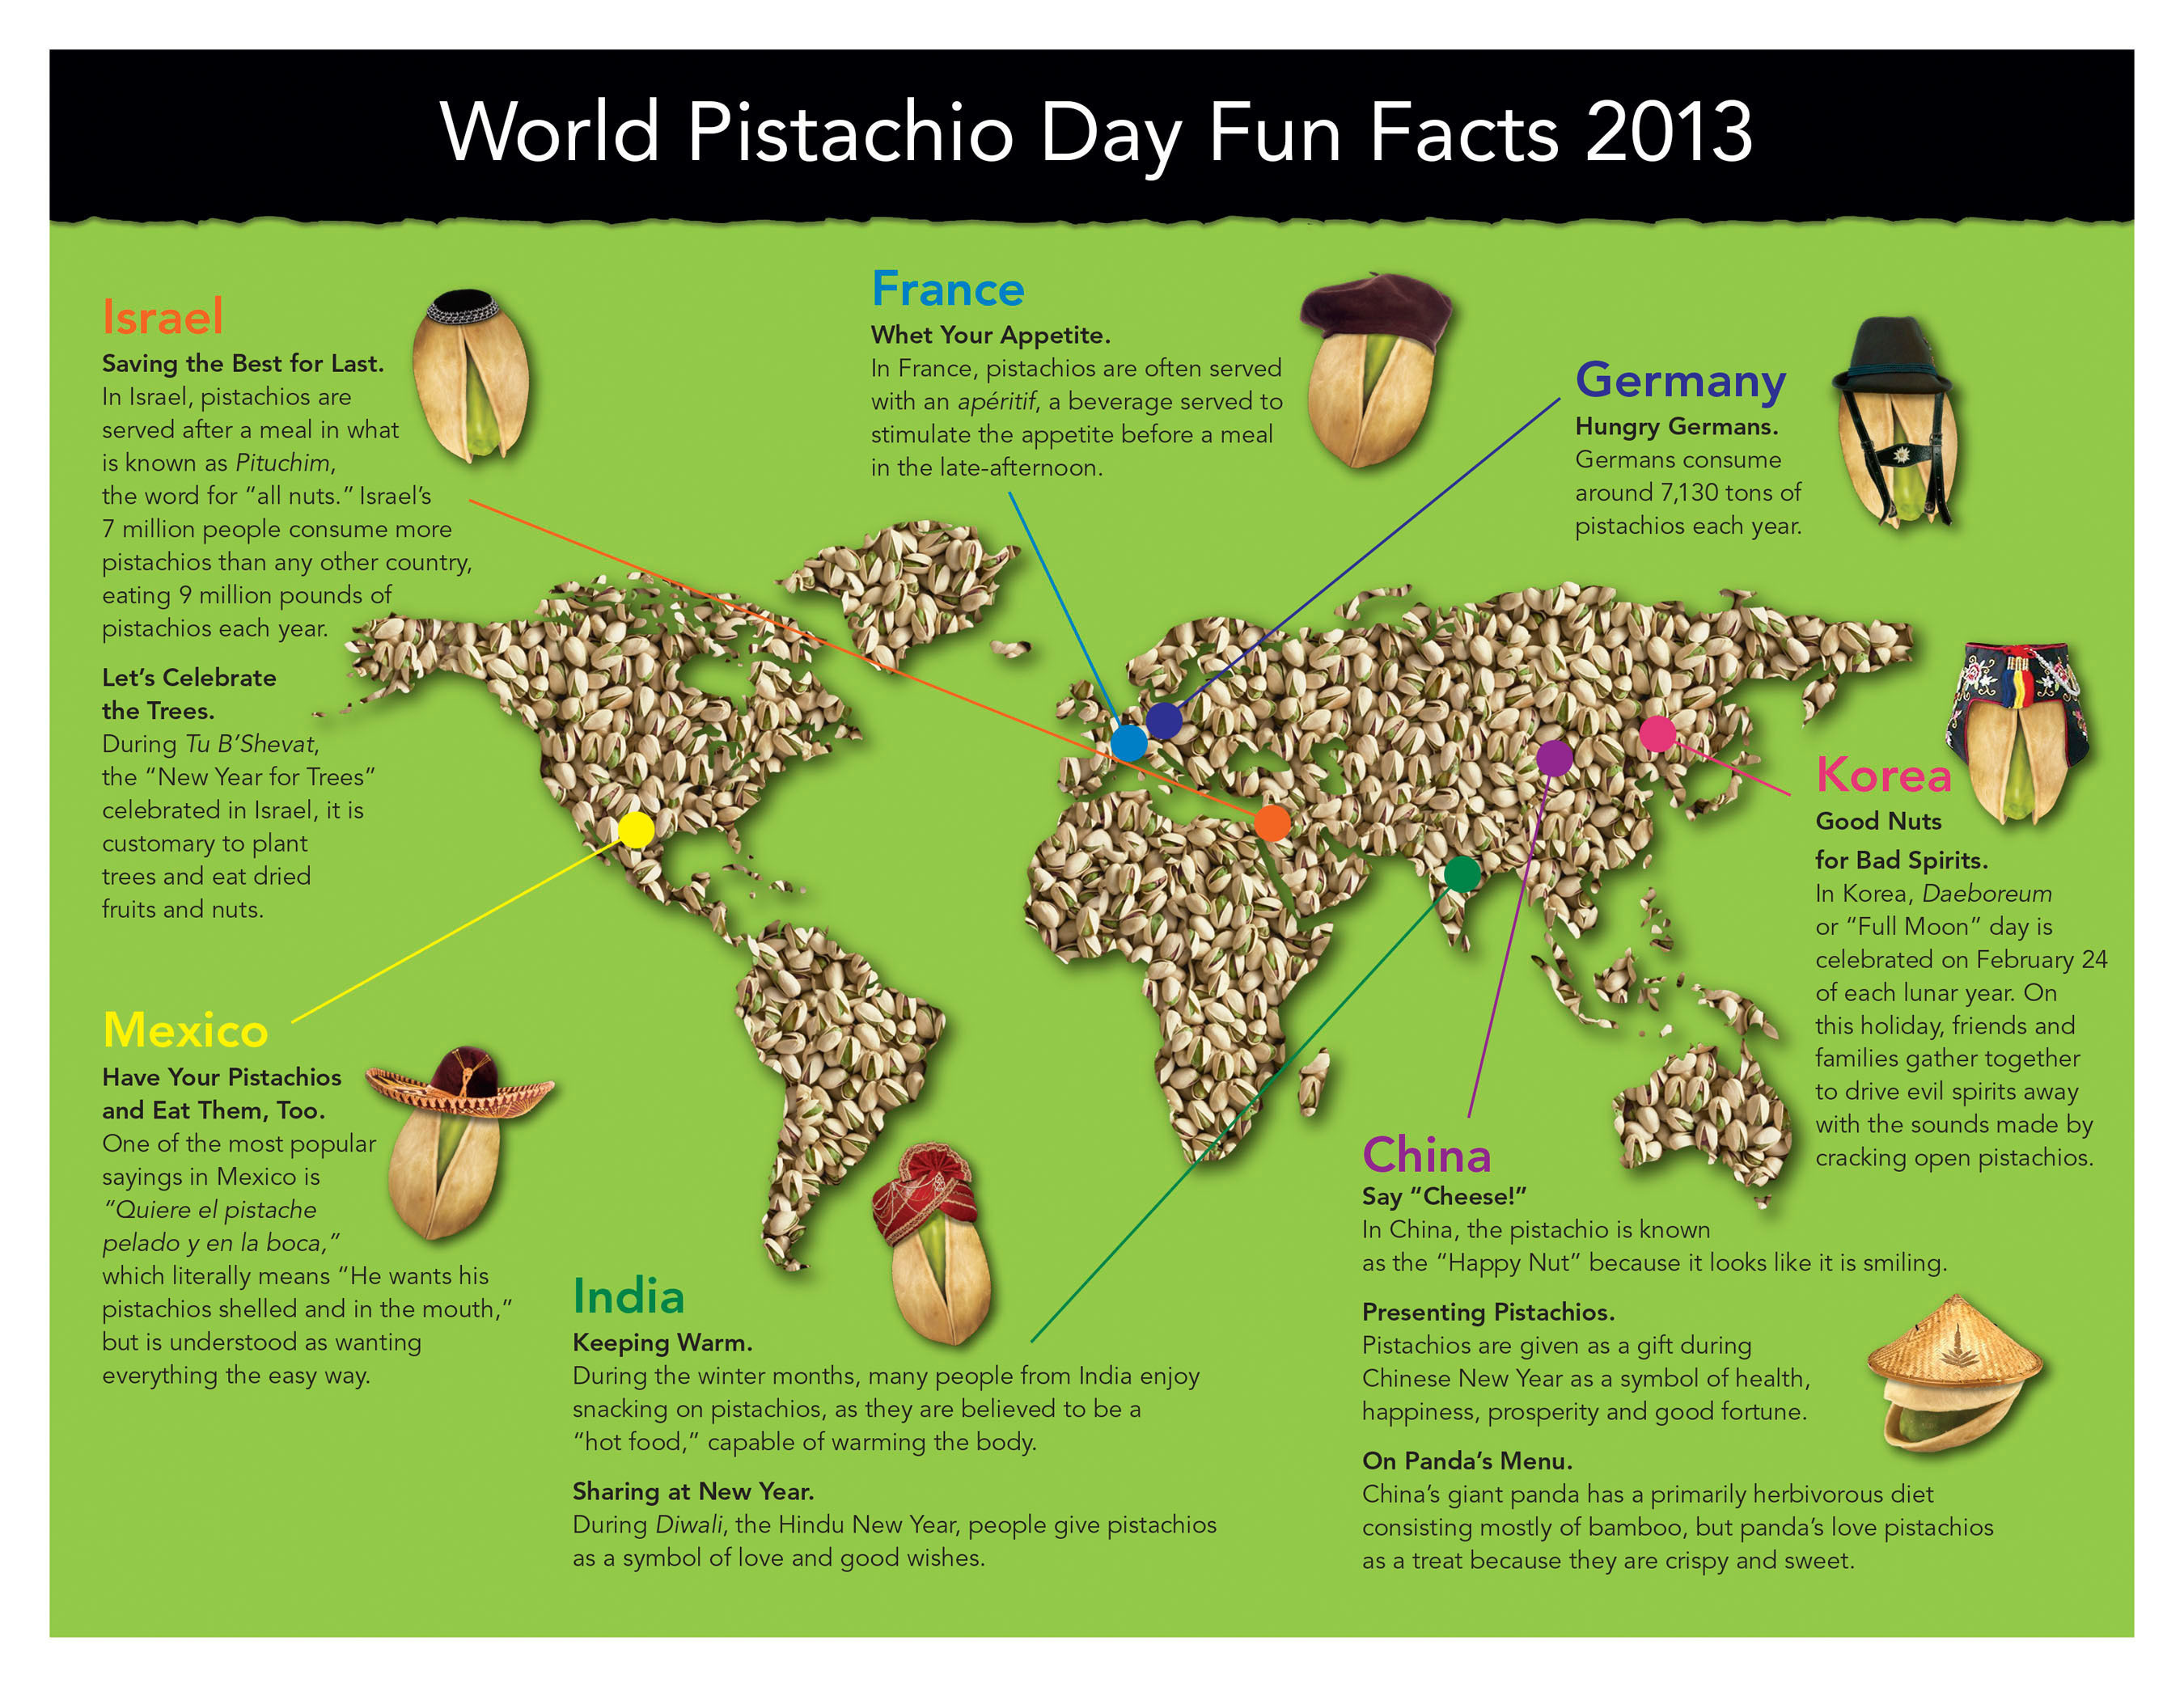 World Pistachio Day 2013 Fun Facts Map (PRNewsFoto/PistachioHealth.com)